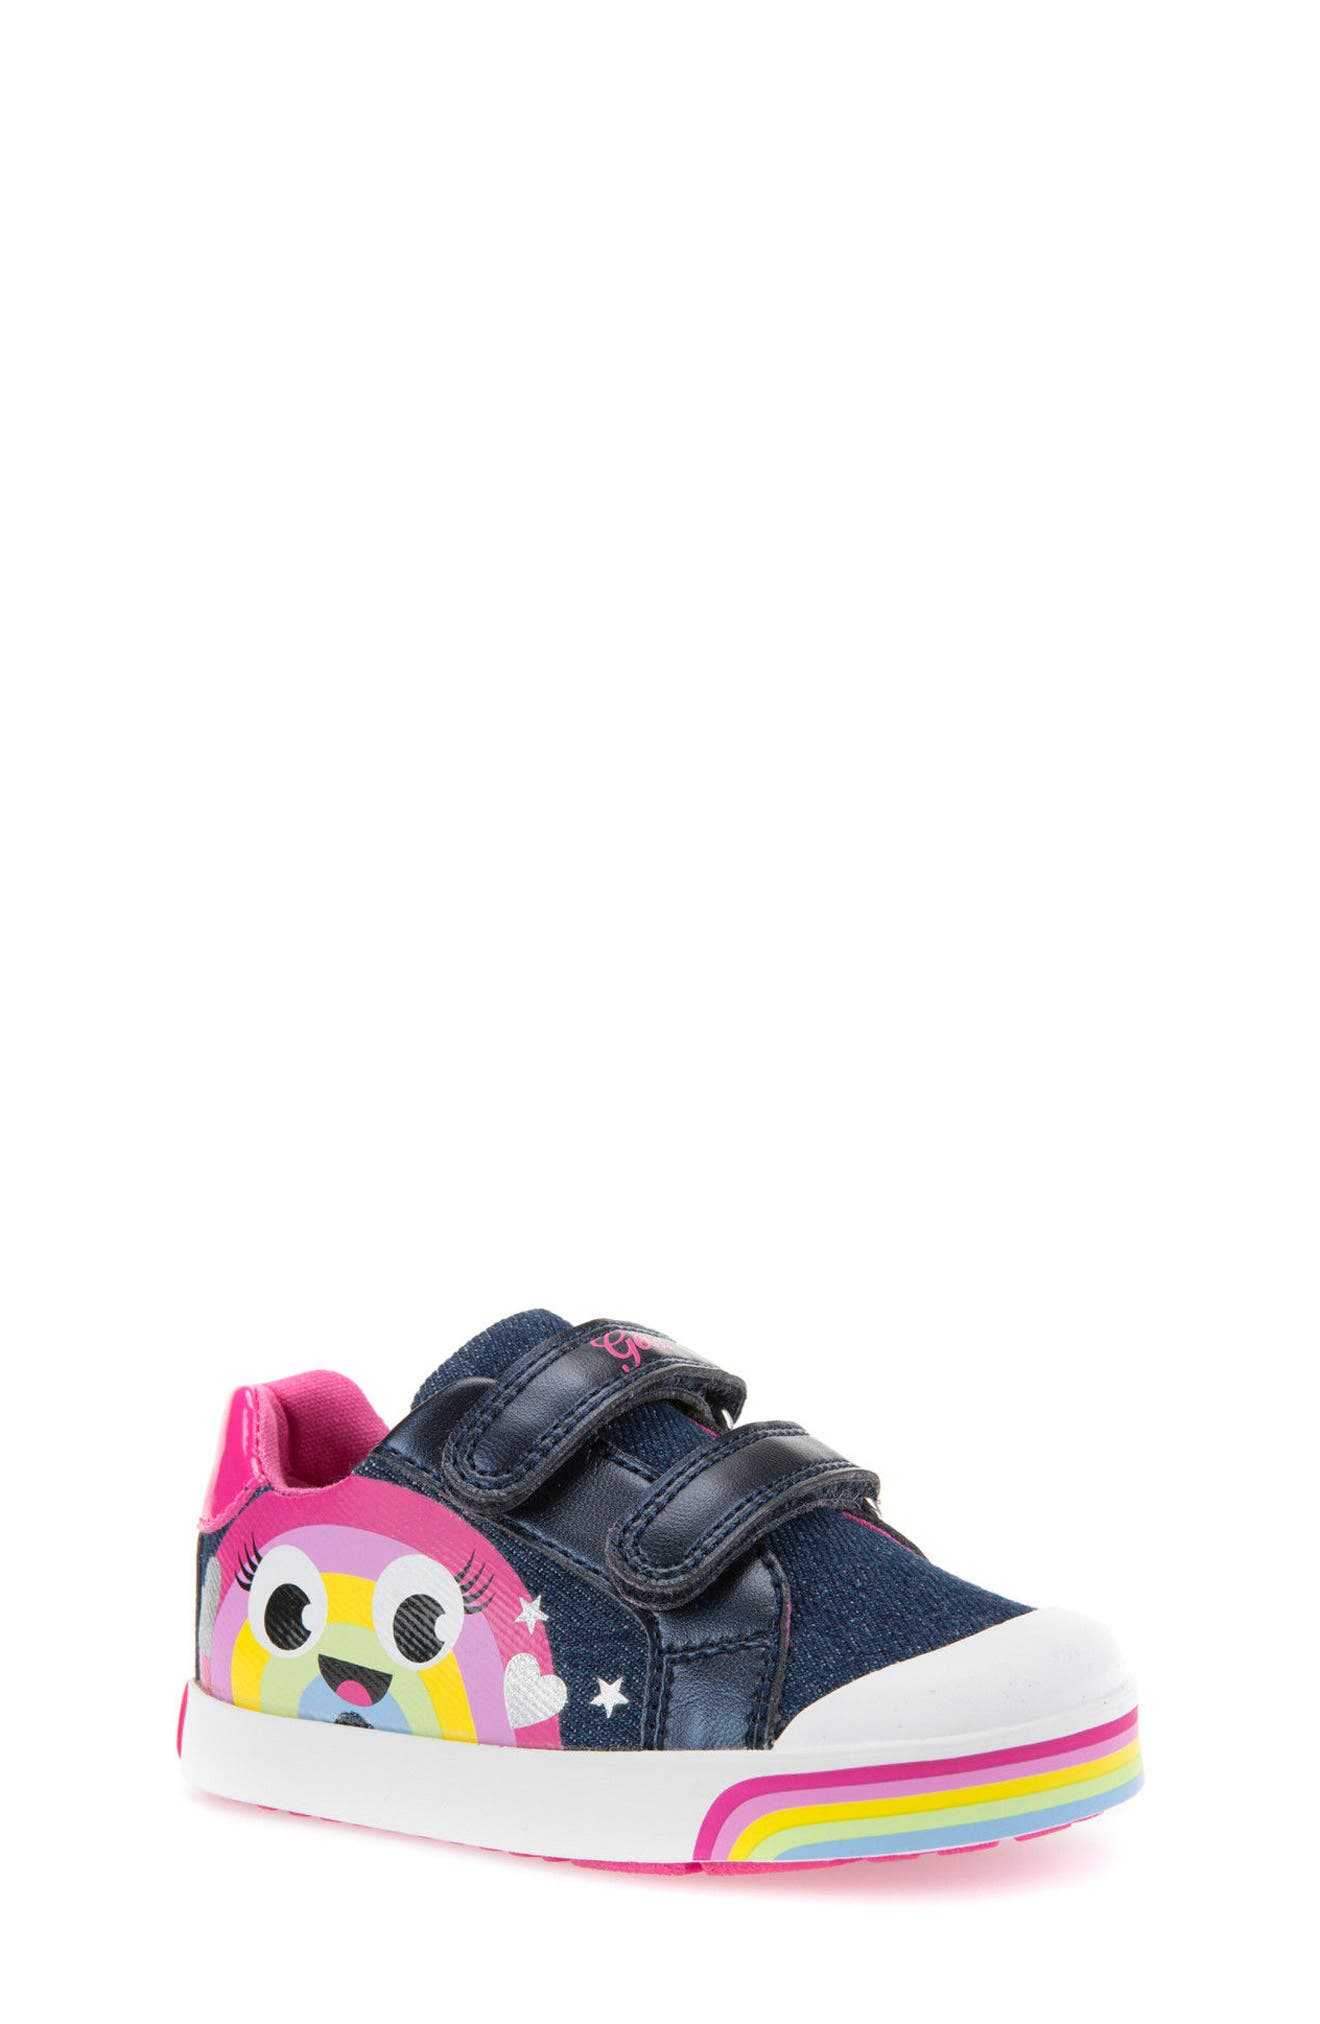 Kilwi Low Top Sneaker,                         Main,                         color, AVIO/ MULTICOLOR